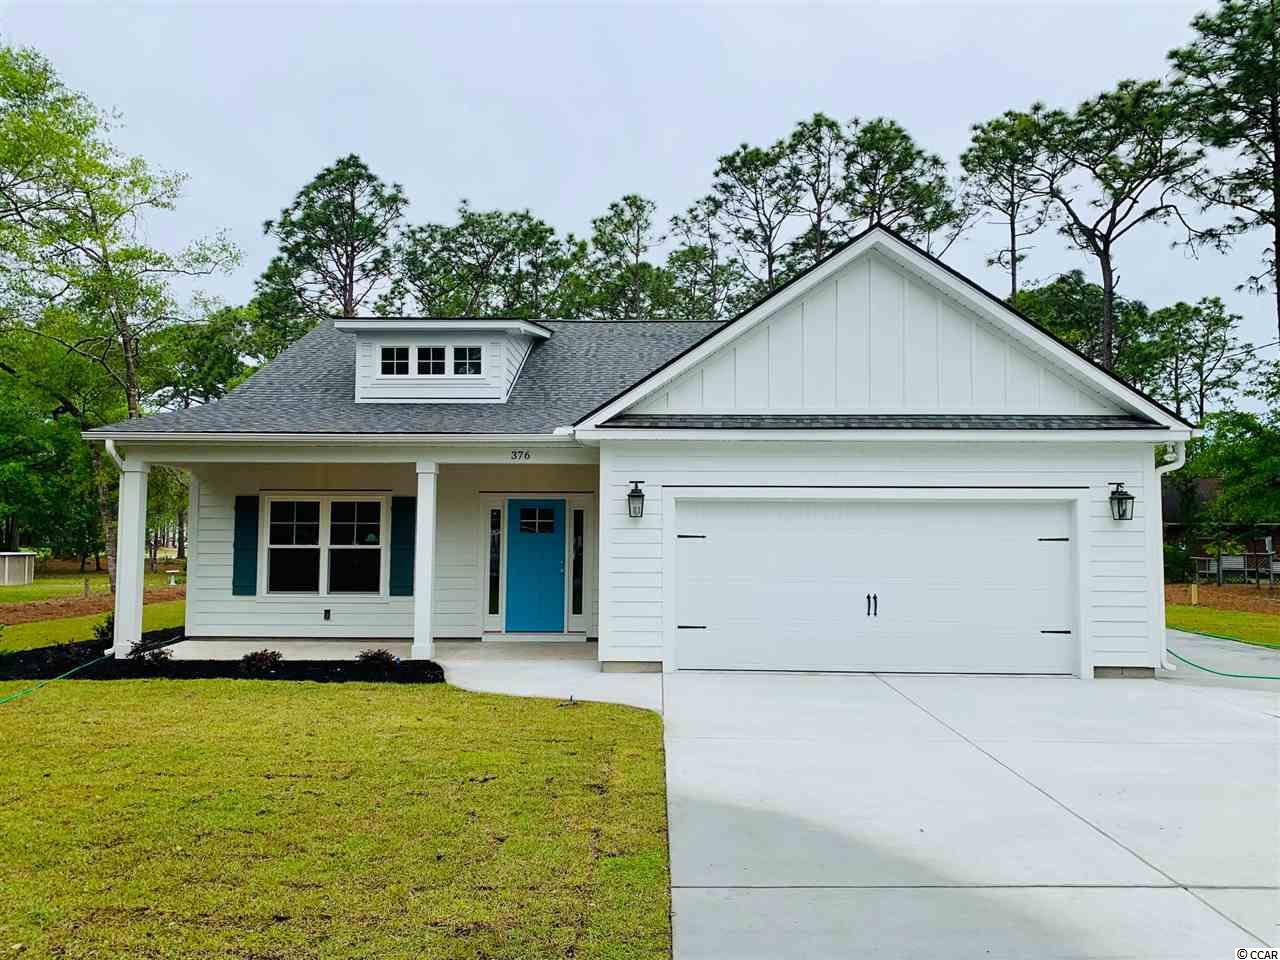 Low Country style cottage homes with impressive standard features to include LVT floors, granite counter tops, stainless steel appliances and carpet. Close to the shops, restaurants, golf courses and beaches of Pawleys Island. Take comfort in one of our newly constructed homes that has a reputation for quality and value. Whether you are a first-time home buyer or looking for your next home, Let us help you through the buying process and welcome you to your new home.